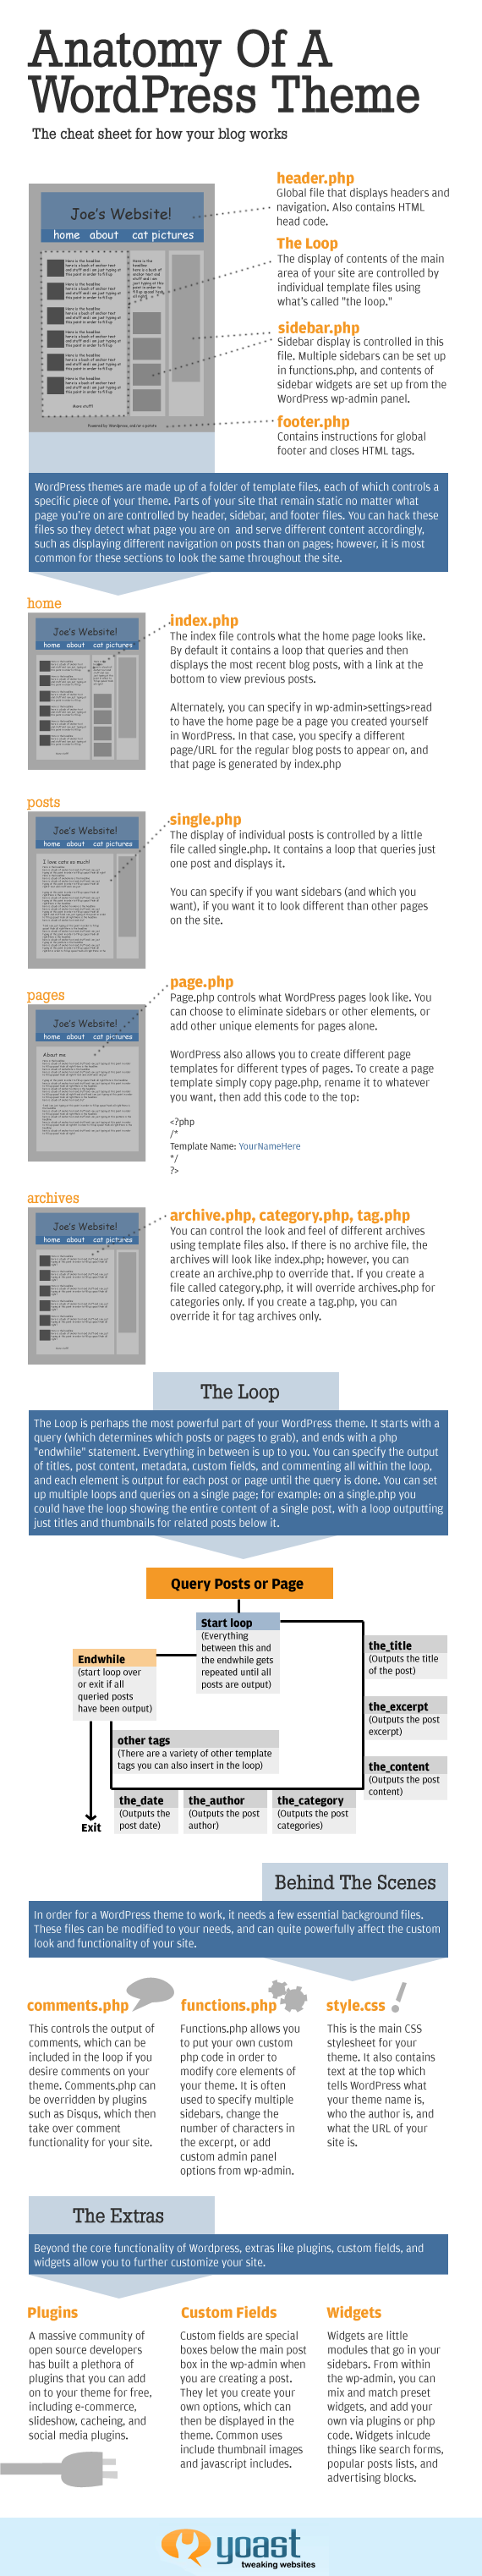 WordPress theme - The Anatomy, an Infographic - Yoast